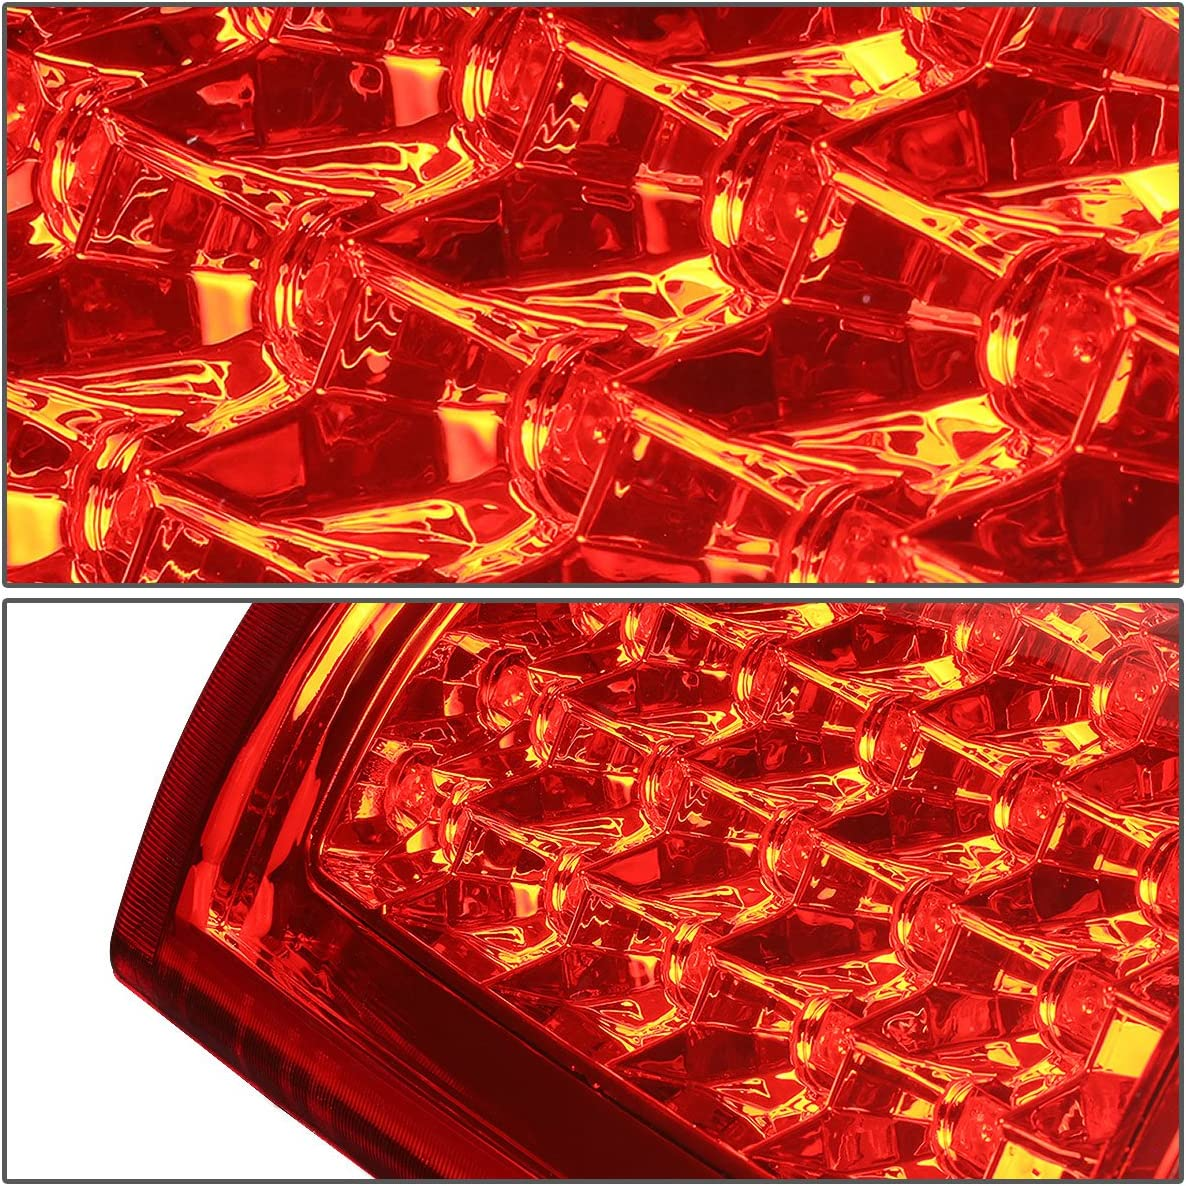 Chrome Smoked Lens LED Tail Light For Chevy Silverado 1st Gen 4pc Pair of Smoked Lens Clear Corner Headlight